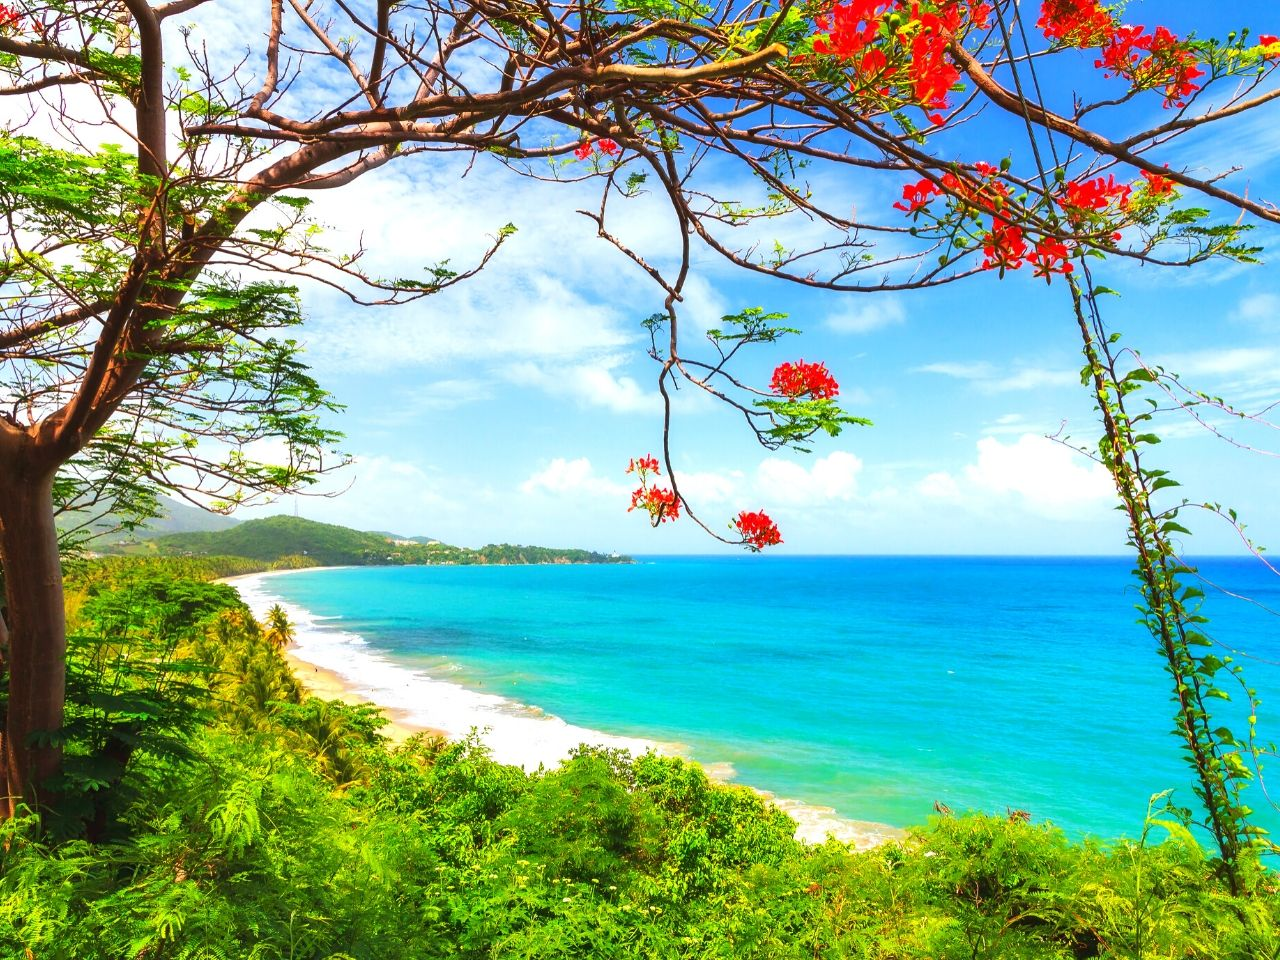 Puerto Rico is in The Top 10 Best Caribbean Islands to Visit in 2020